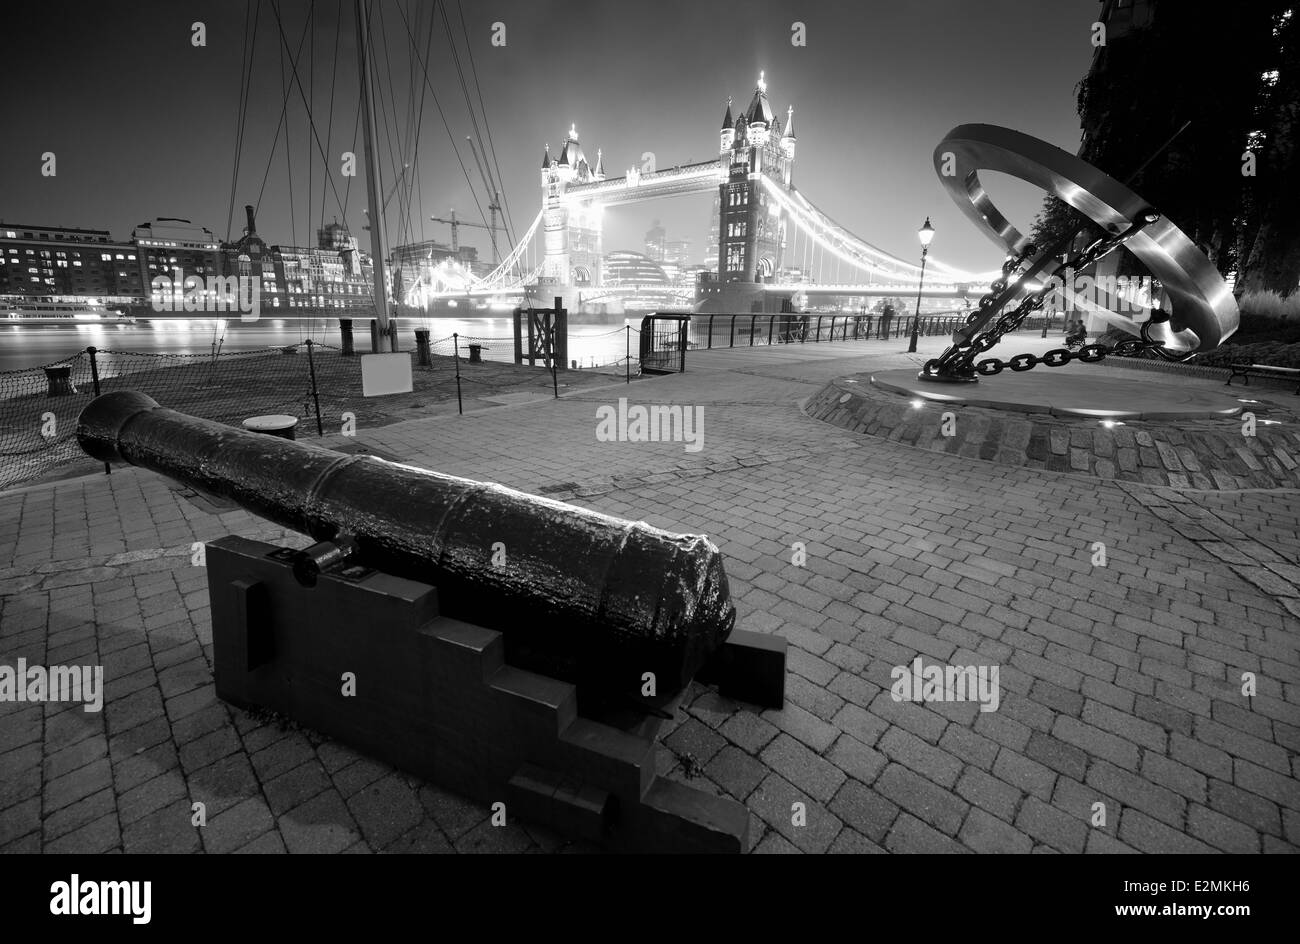 Cannon and Tower Bridge at night at St. Katherine Dock in London. - Stock Image